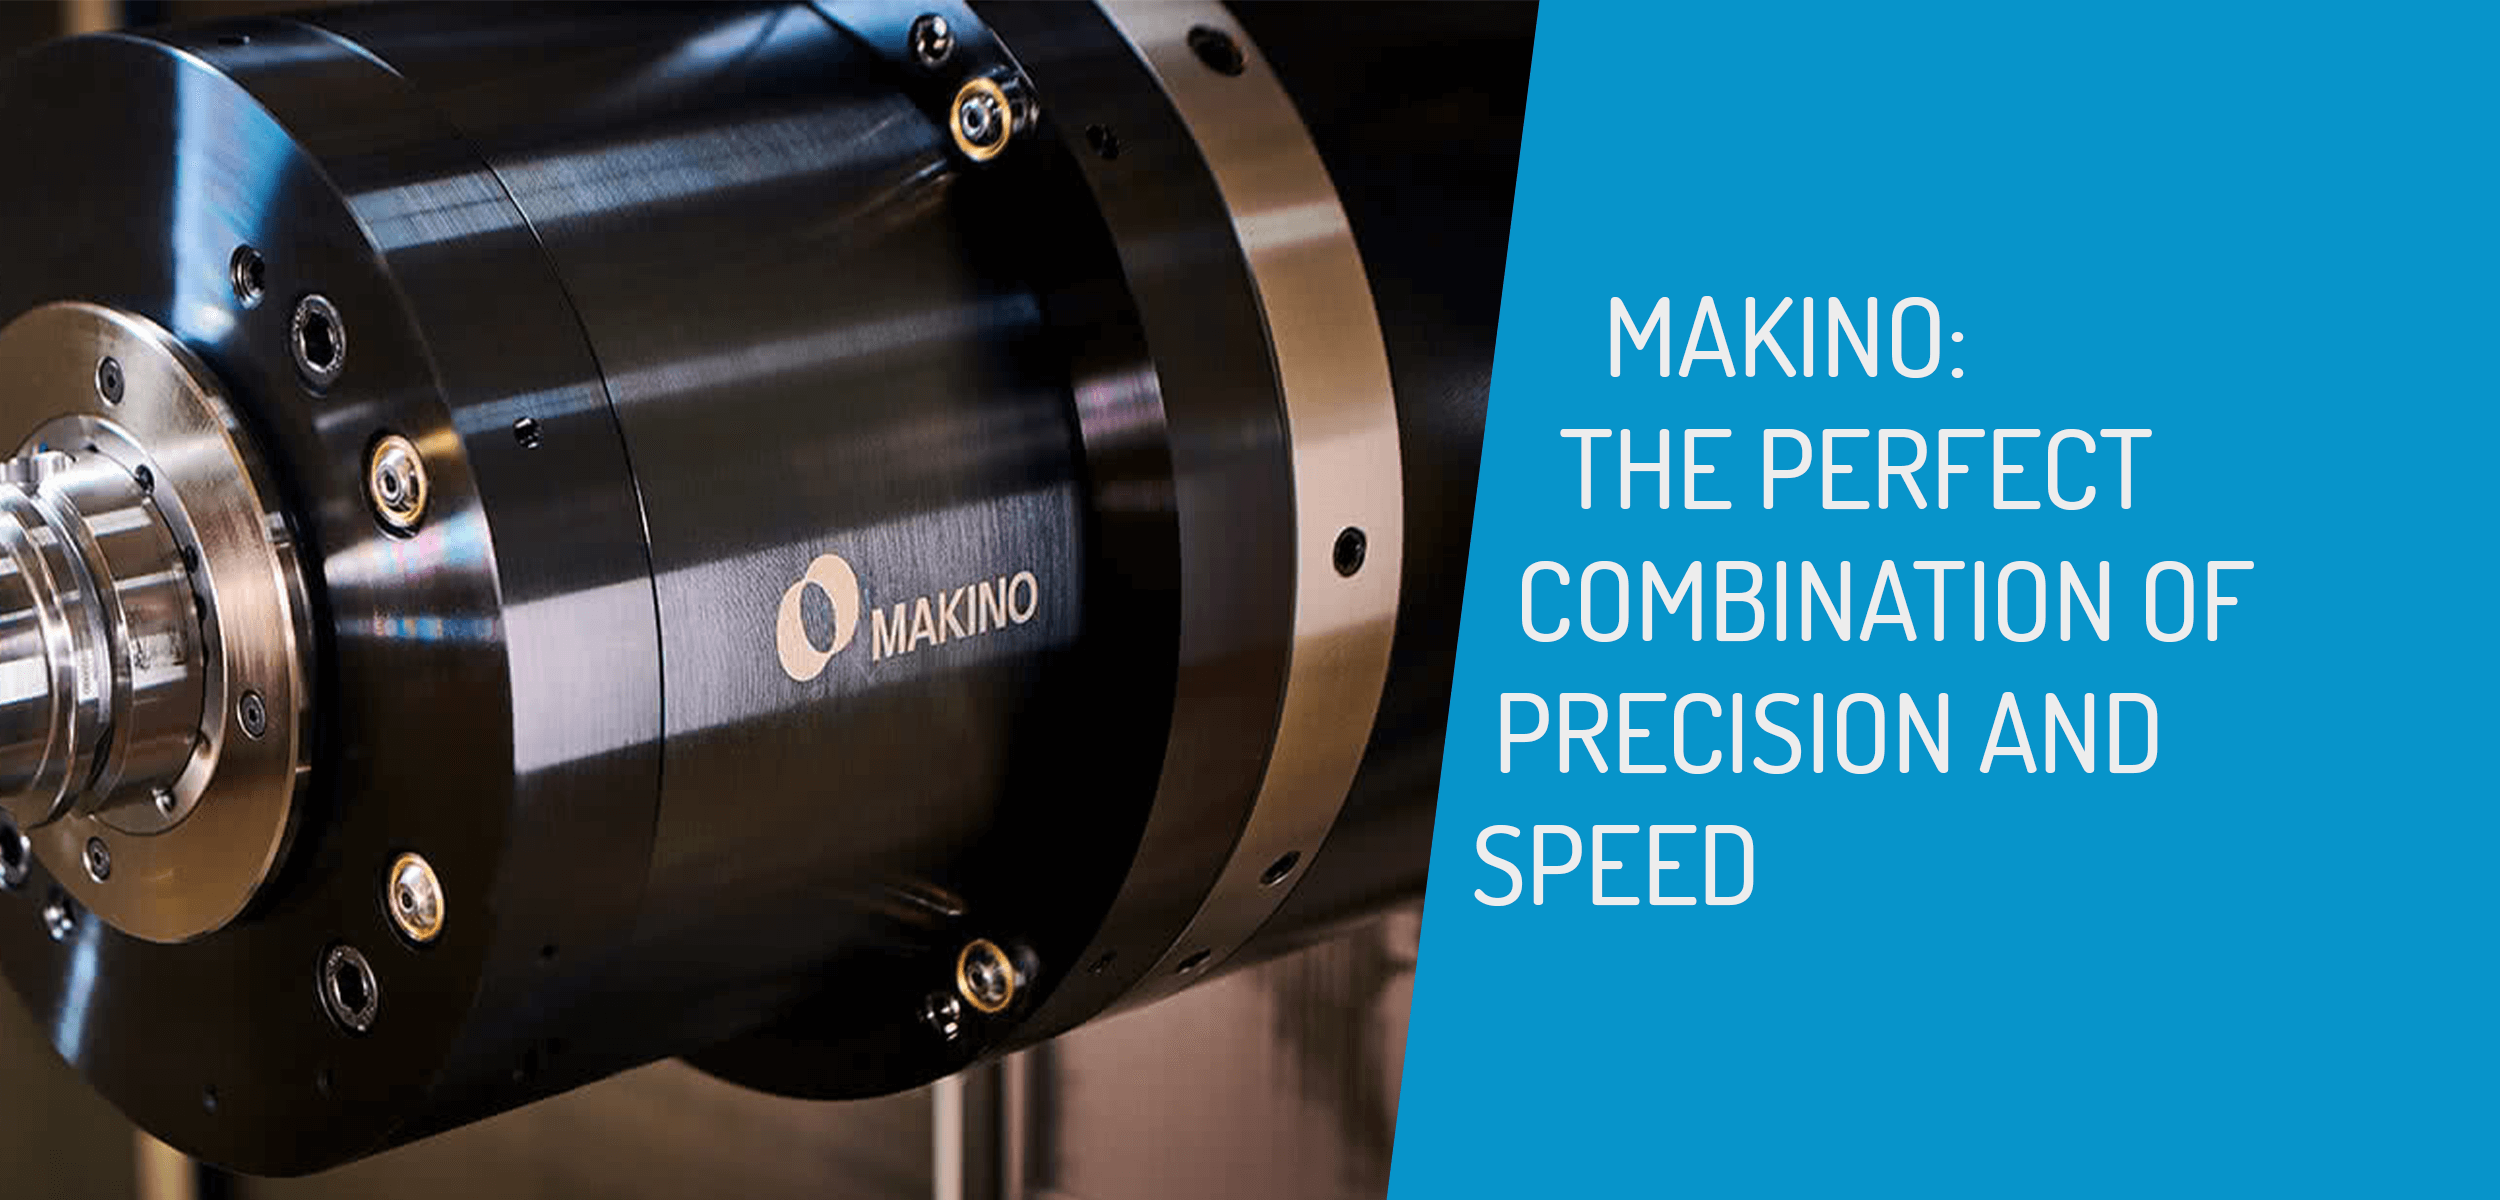 Makino Precision and Speed